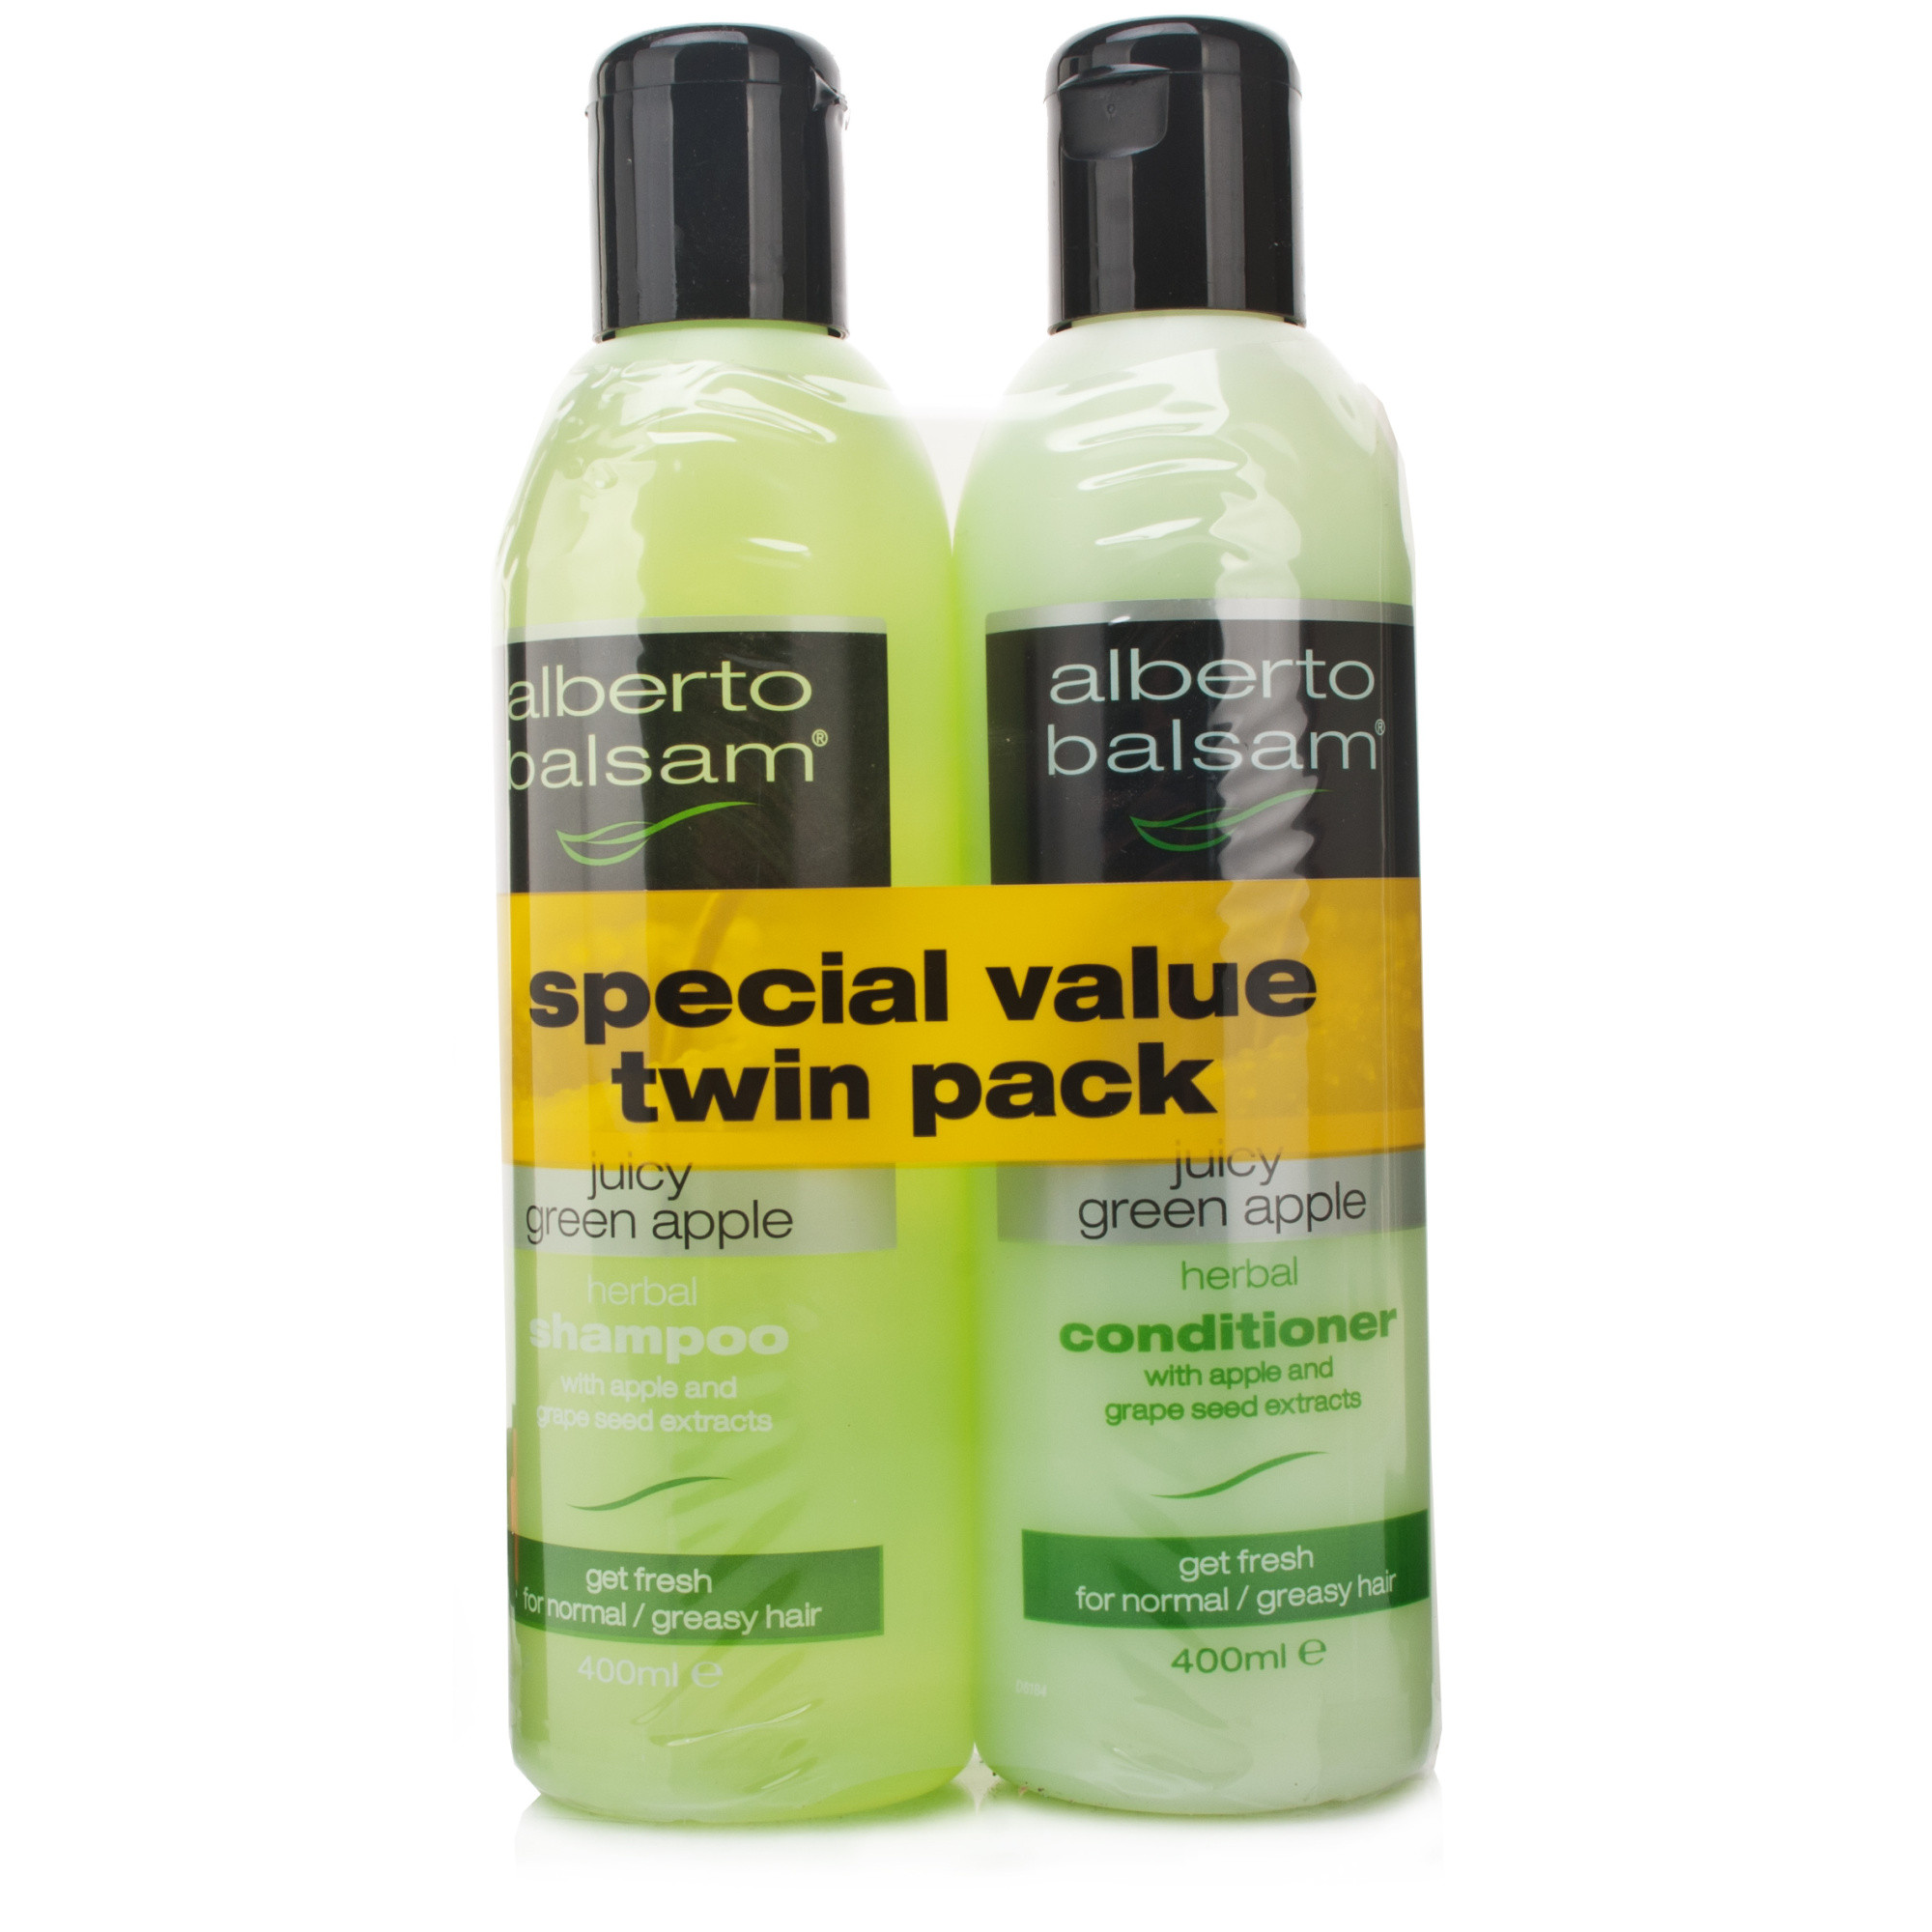 Alberto Balsam Juicy Green Apple Shampoo & Conditioner Twin Pack